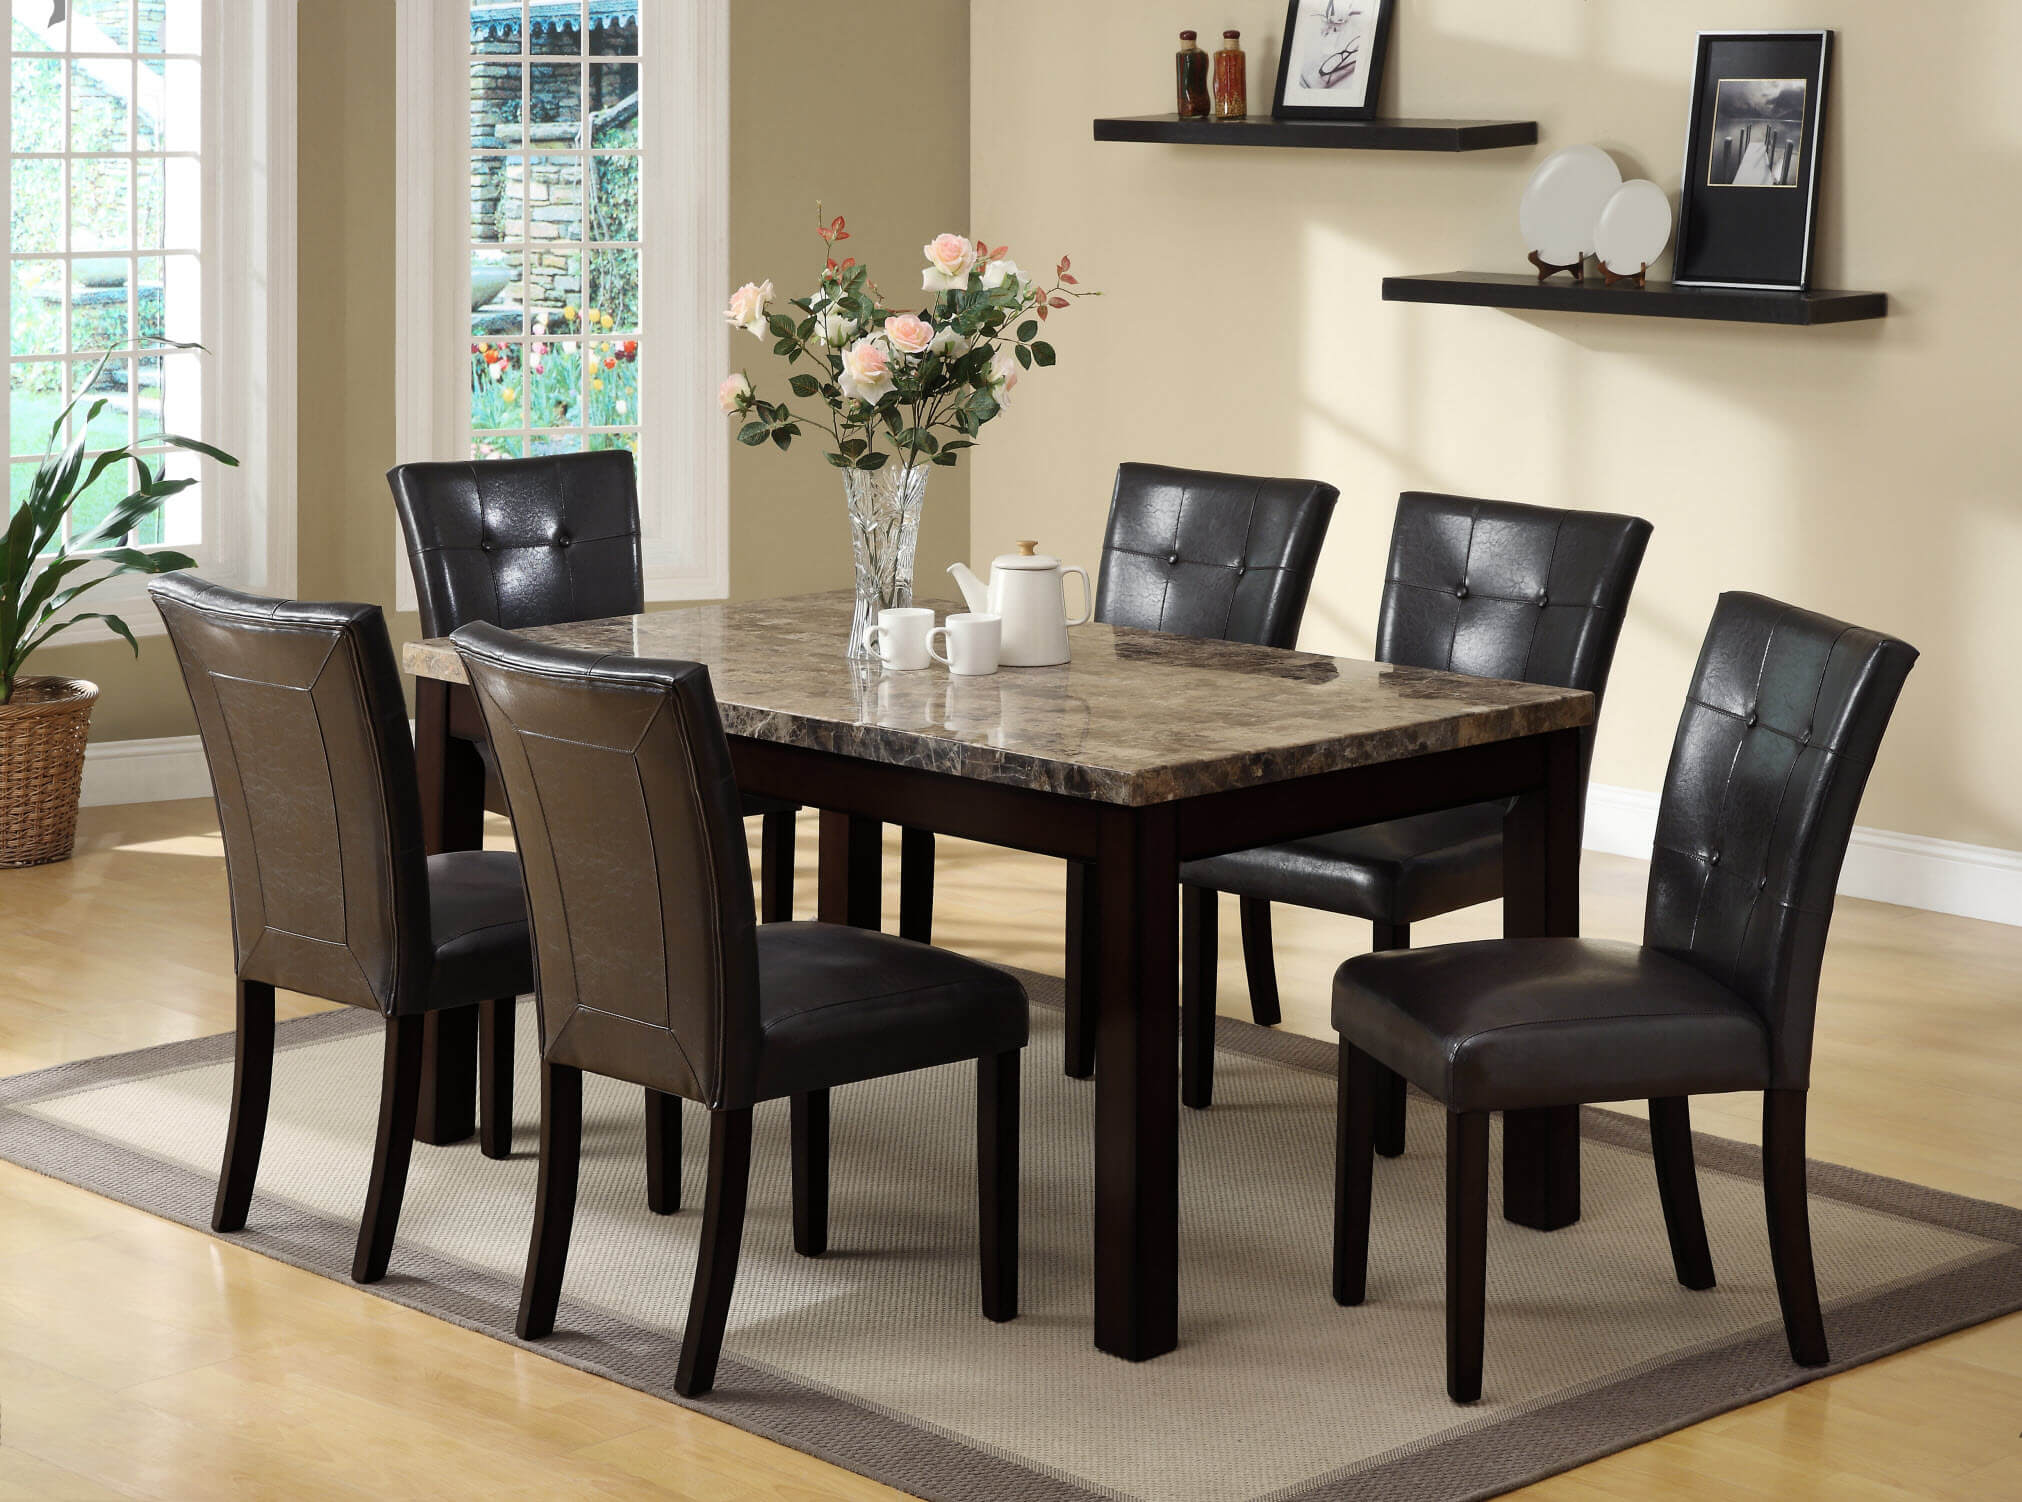 Bruce 5 Pc Espresso Dining Set Dining Furniture Room Sets